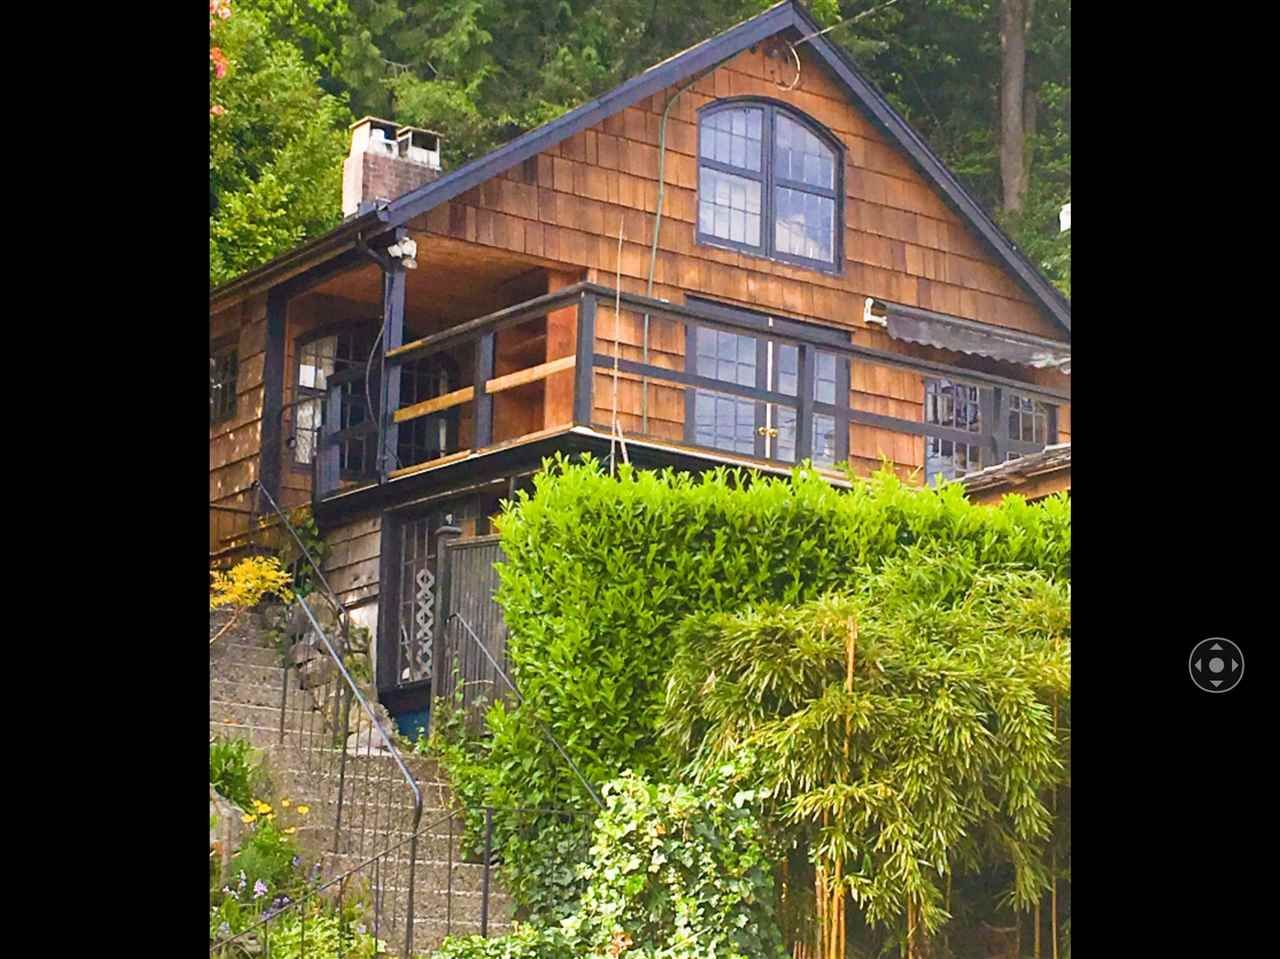 """Main Photo: 2671 PANORAMA Drive in North Vancouver: Deep Cove House for sale in """"DEEP COVE"""" : MLS®# R2476755"""